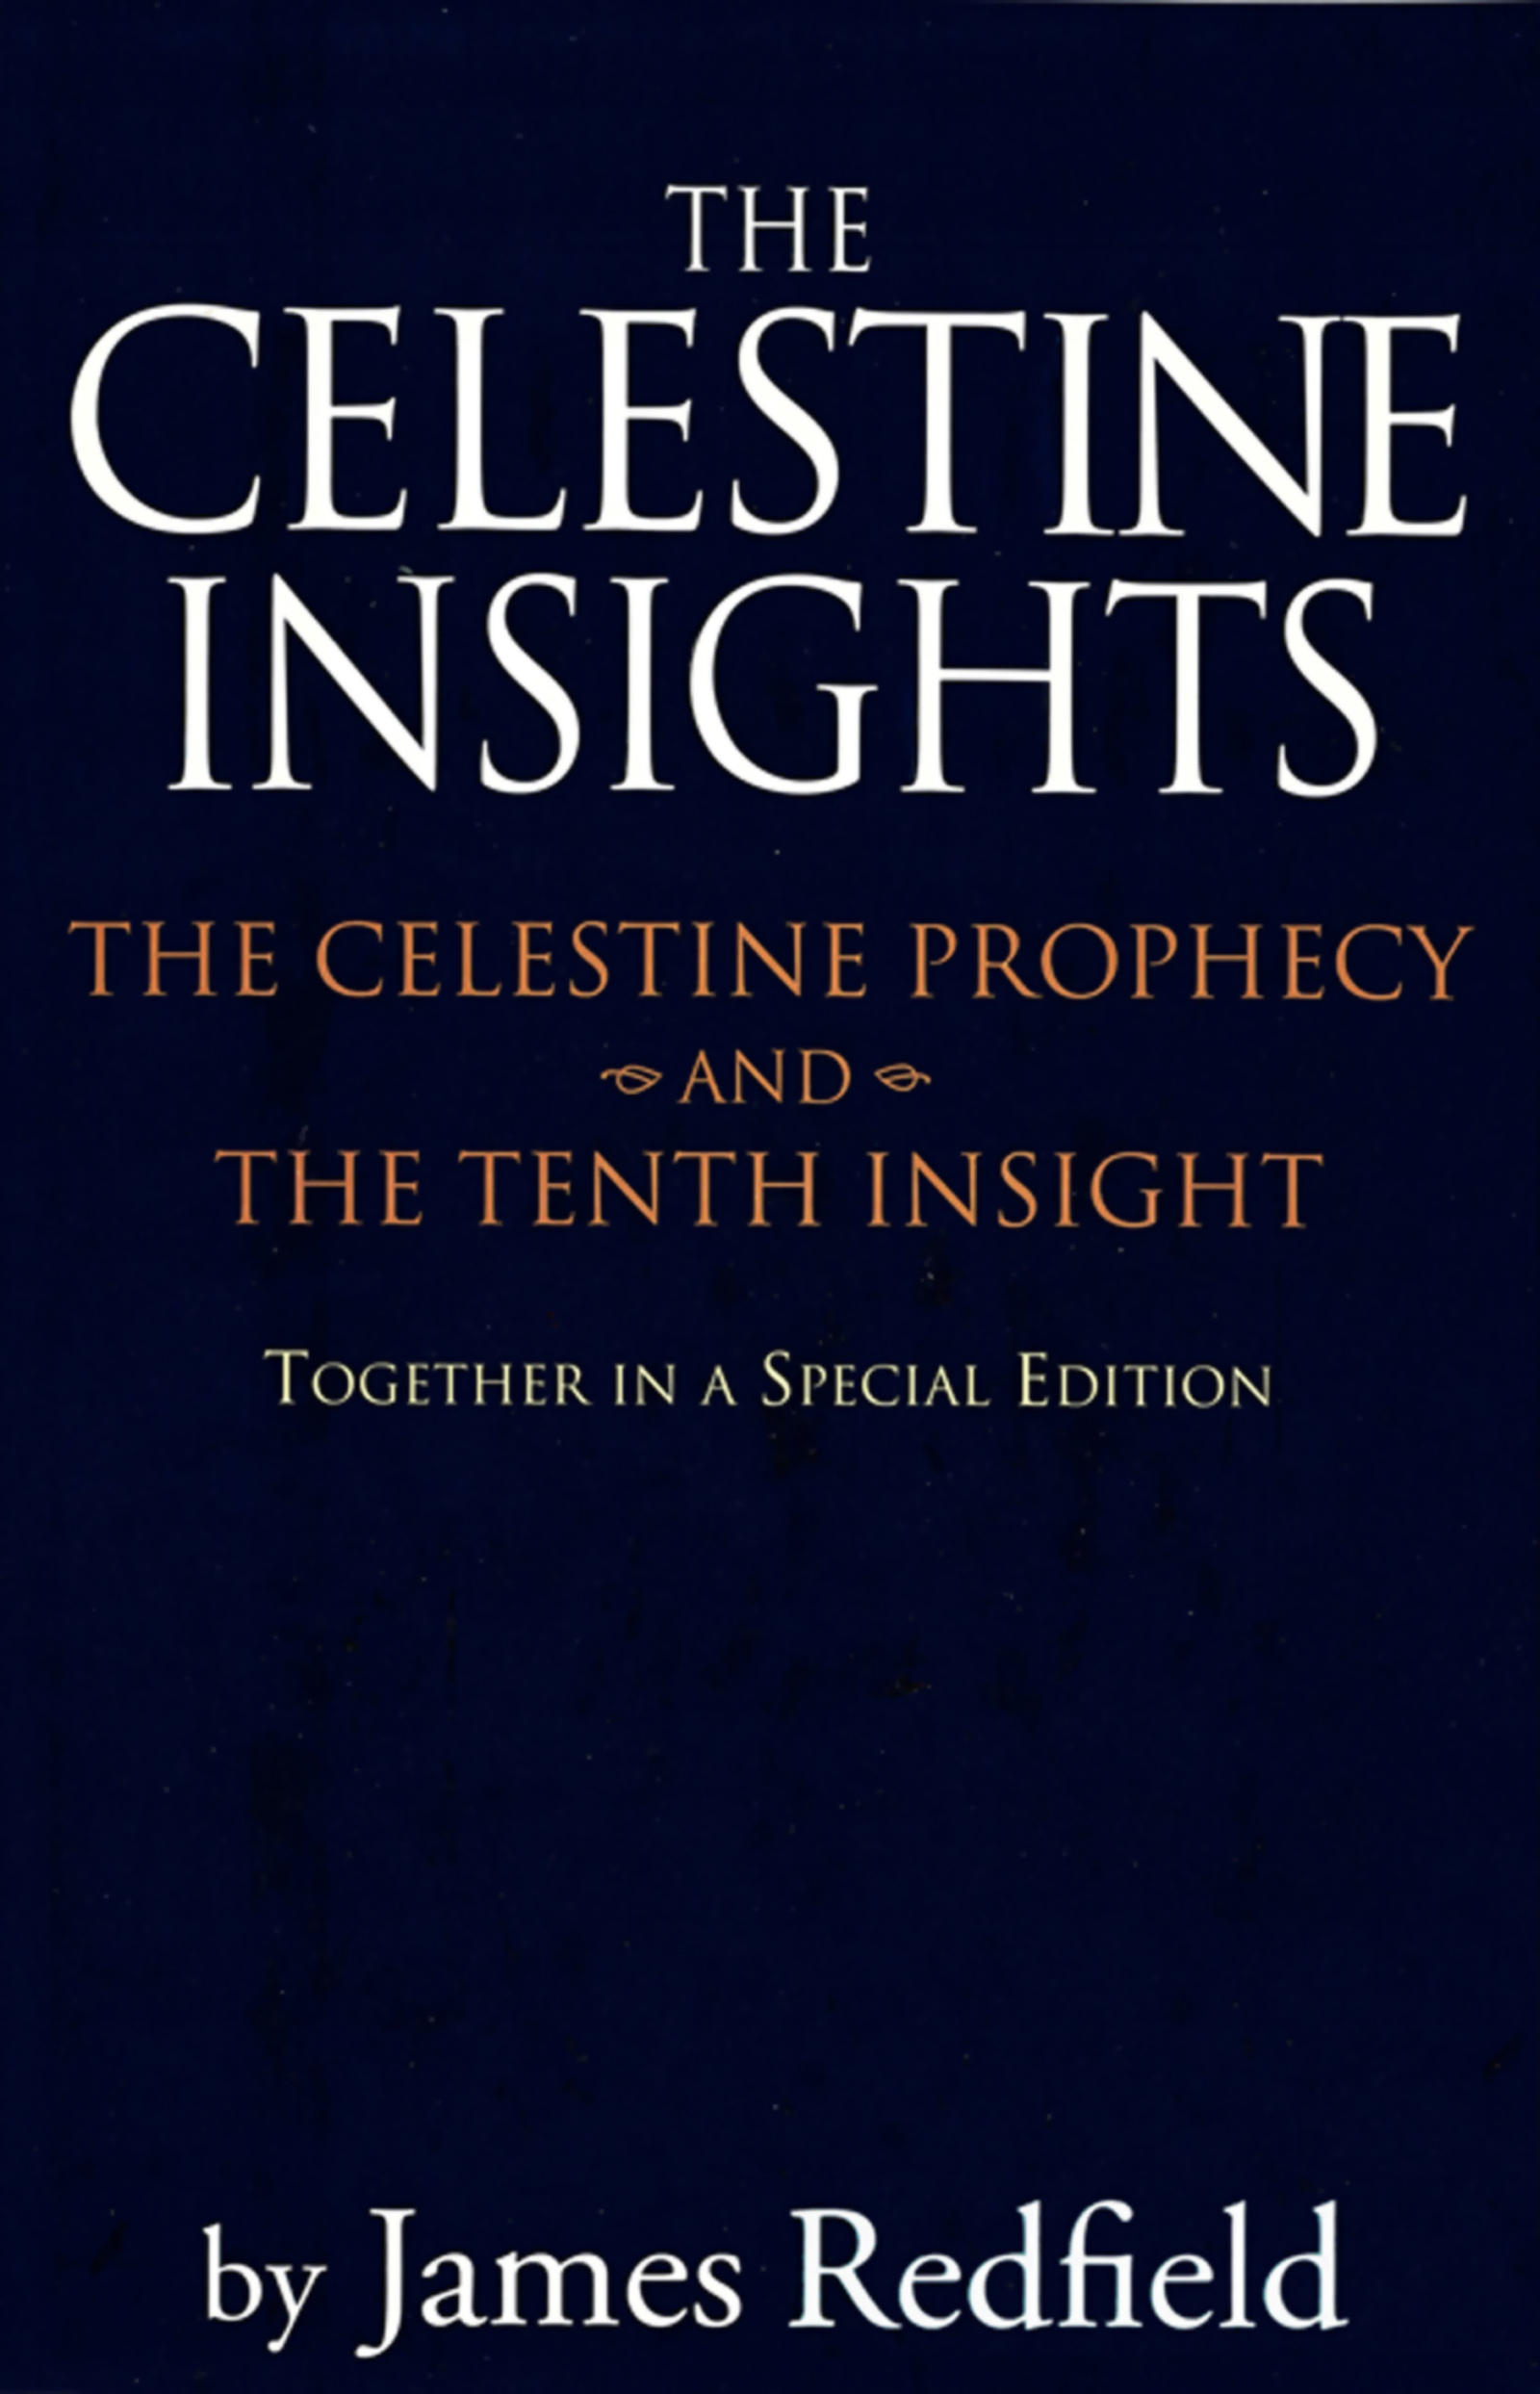 Celestine Insights - Limited Edition of Celestine Prophecy and Tenth Insight